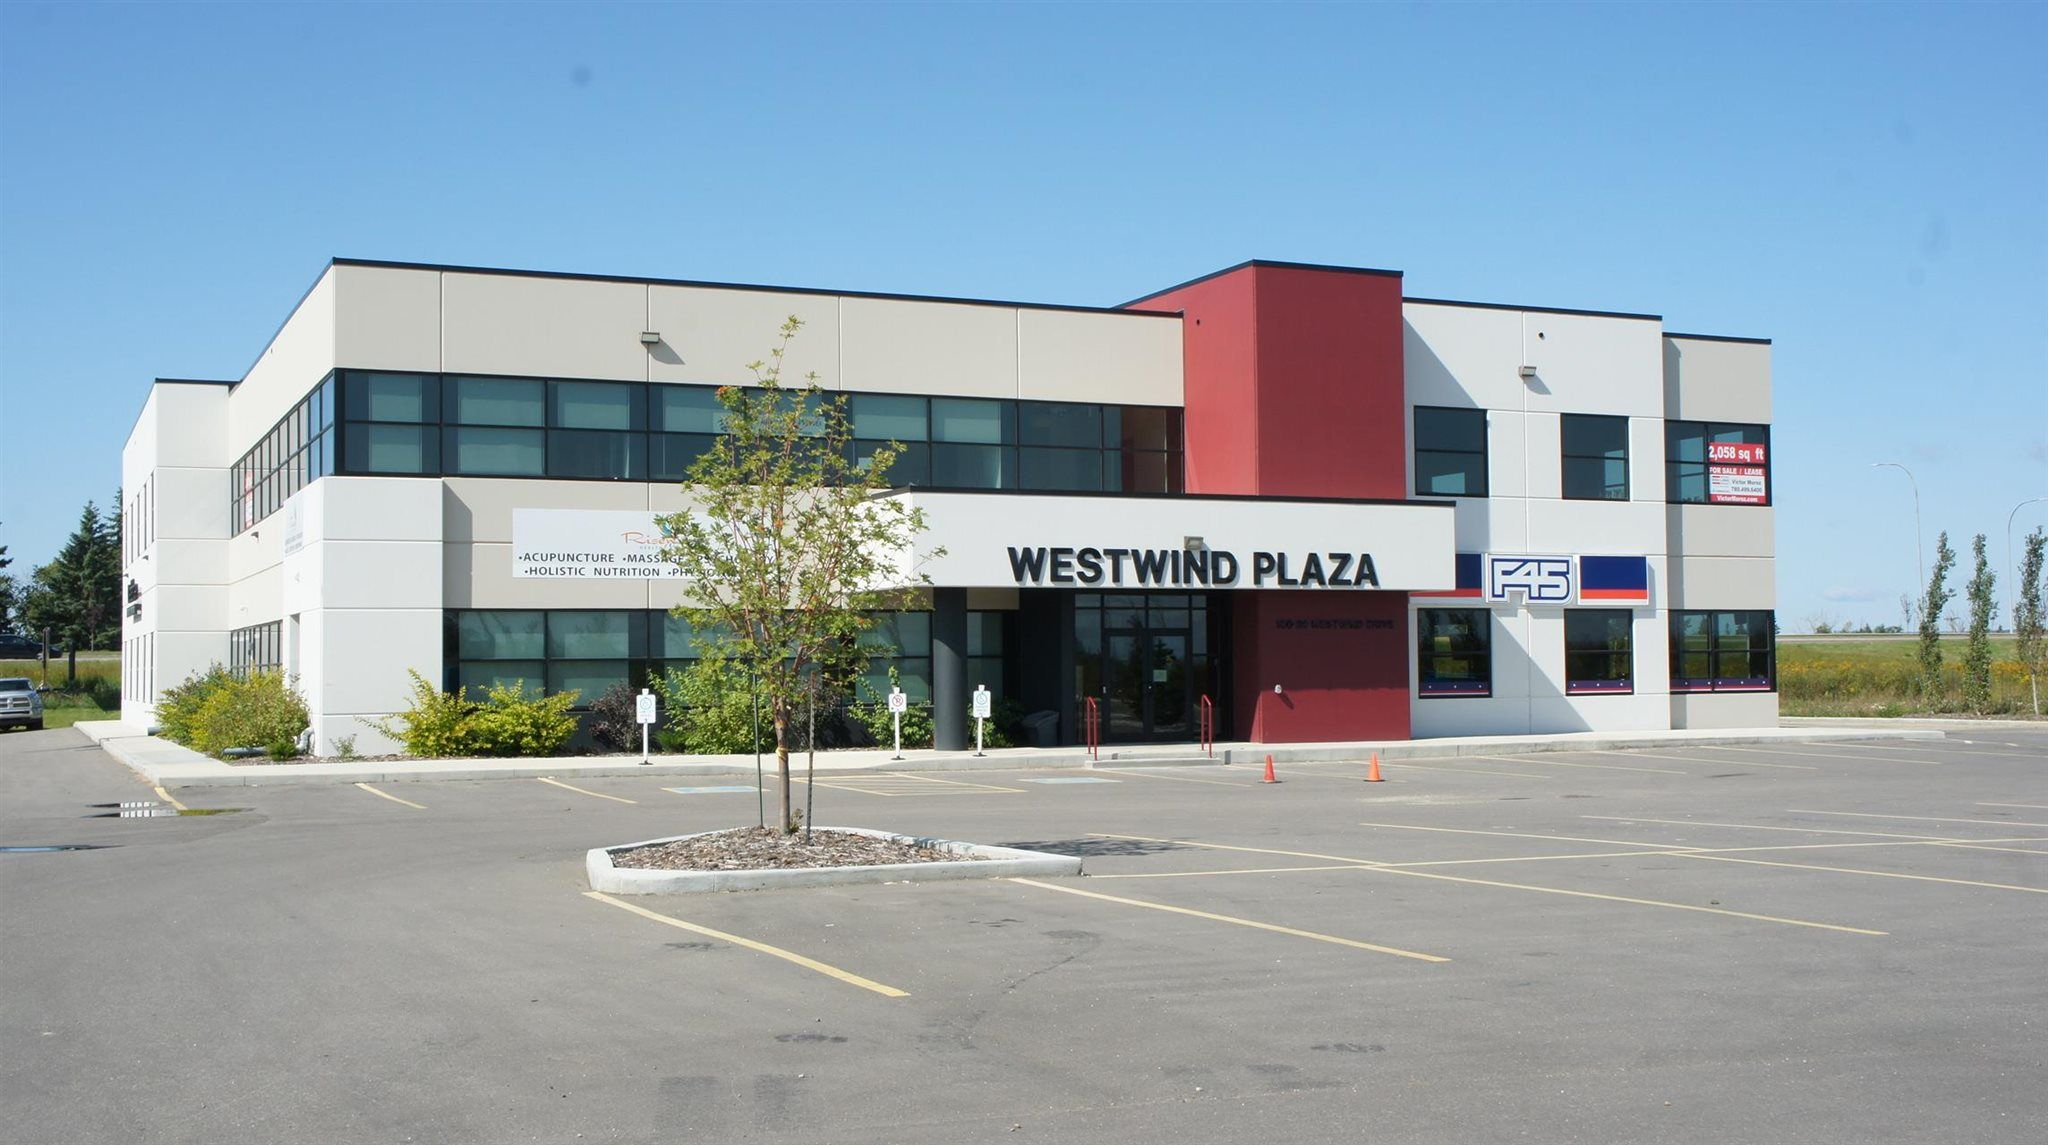 Main Photo: 123 20 WESTWIND Drive: Spruce Grove Office for sale or lease : MLS®# E4252561